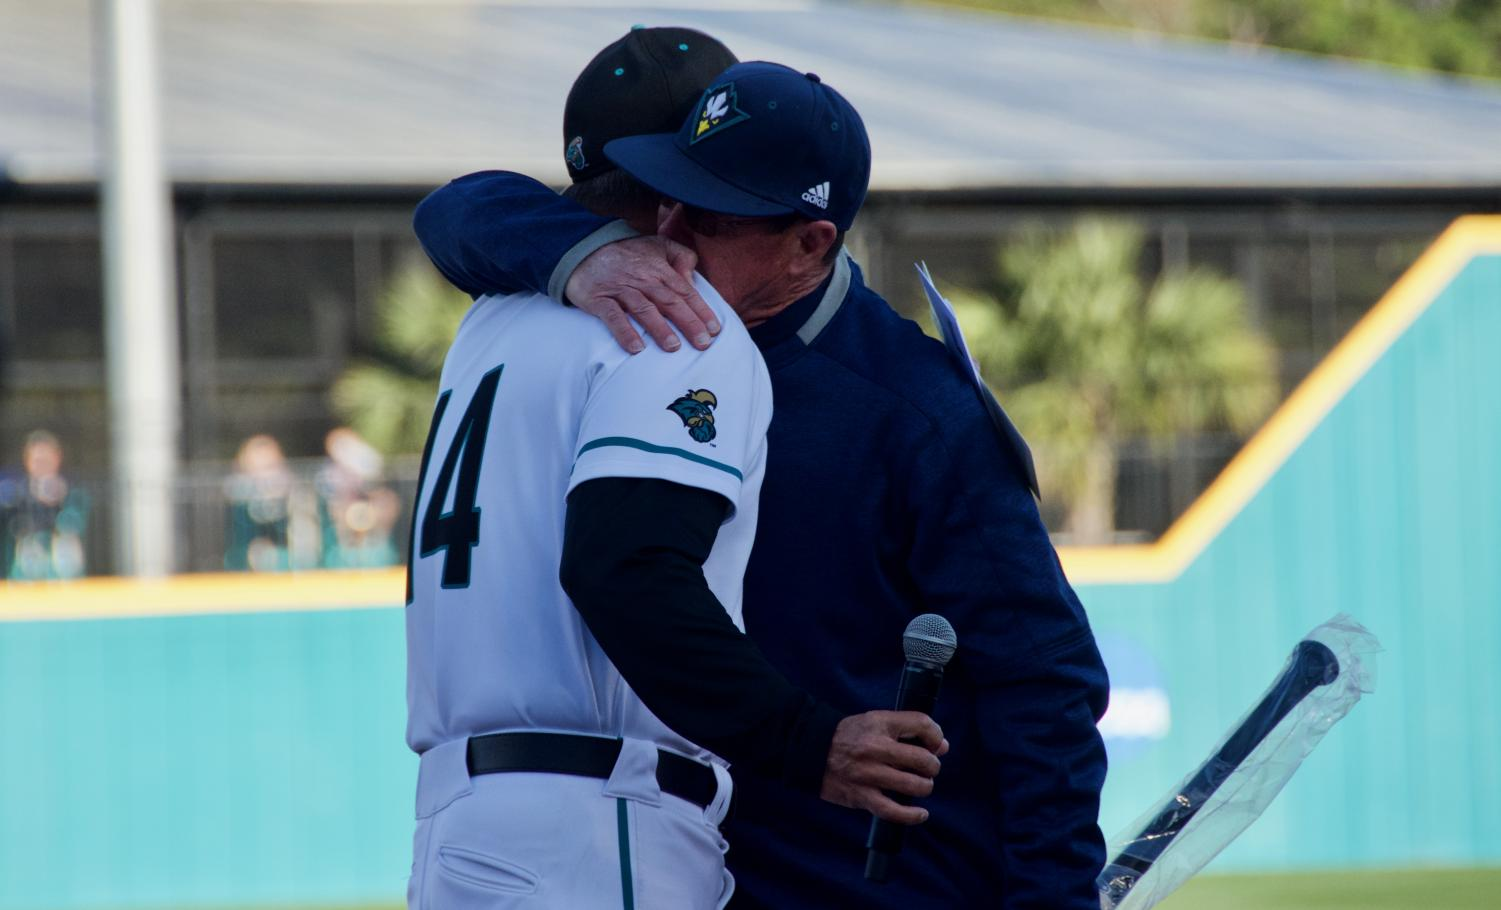 UNCW head coach Mark Scalf and Coastal Carolina head coach Gary Gilmore share a hug before Scalf's final matchup with the Chanticleers on March 27, 2019 at Springs Brooks Stadium.